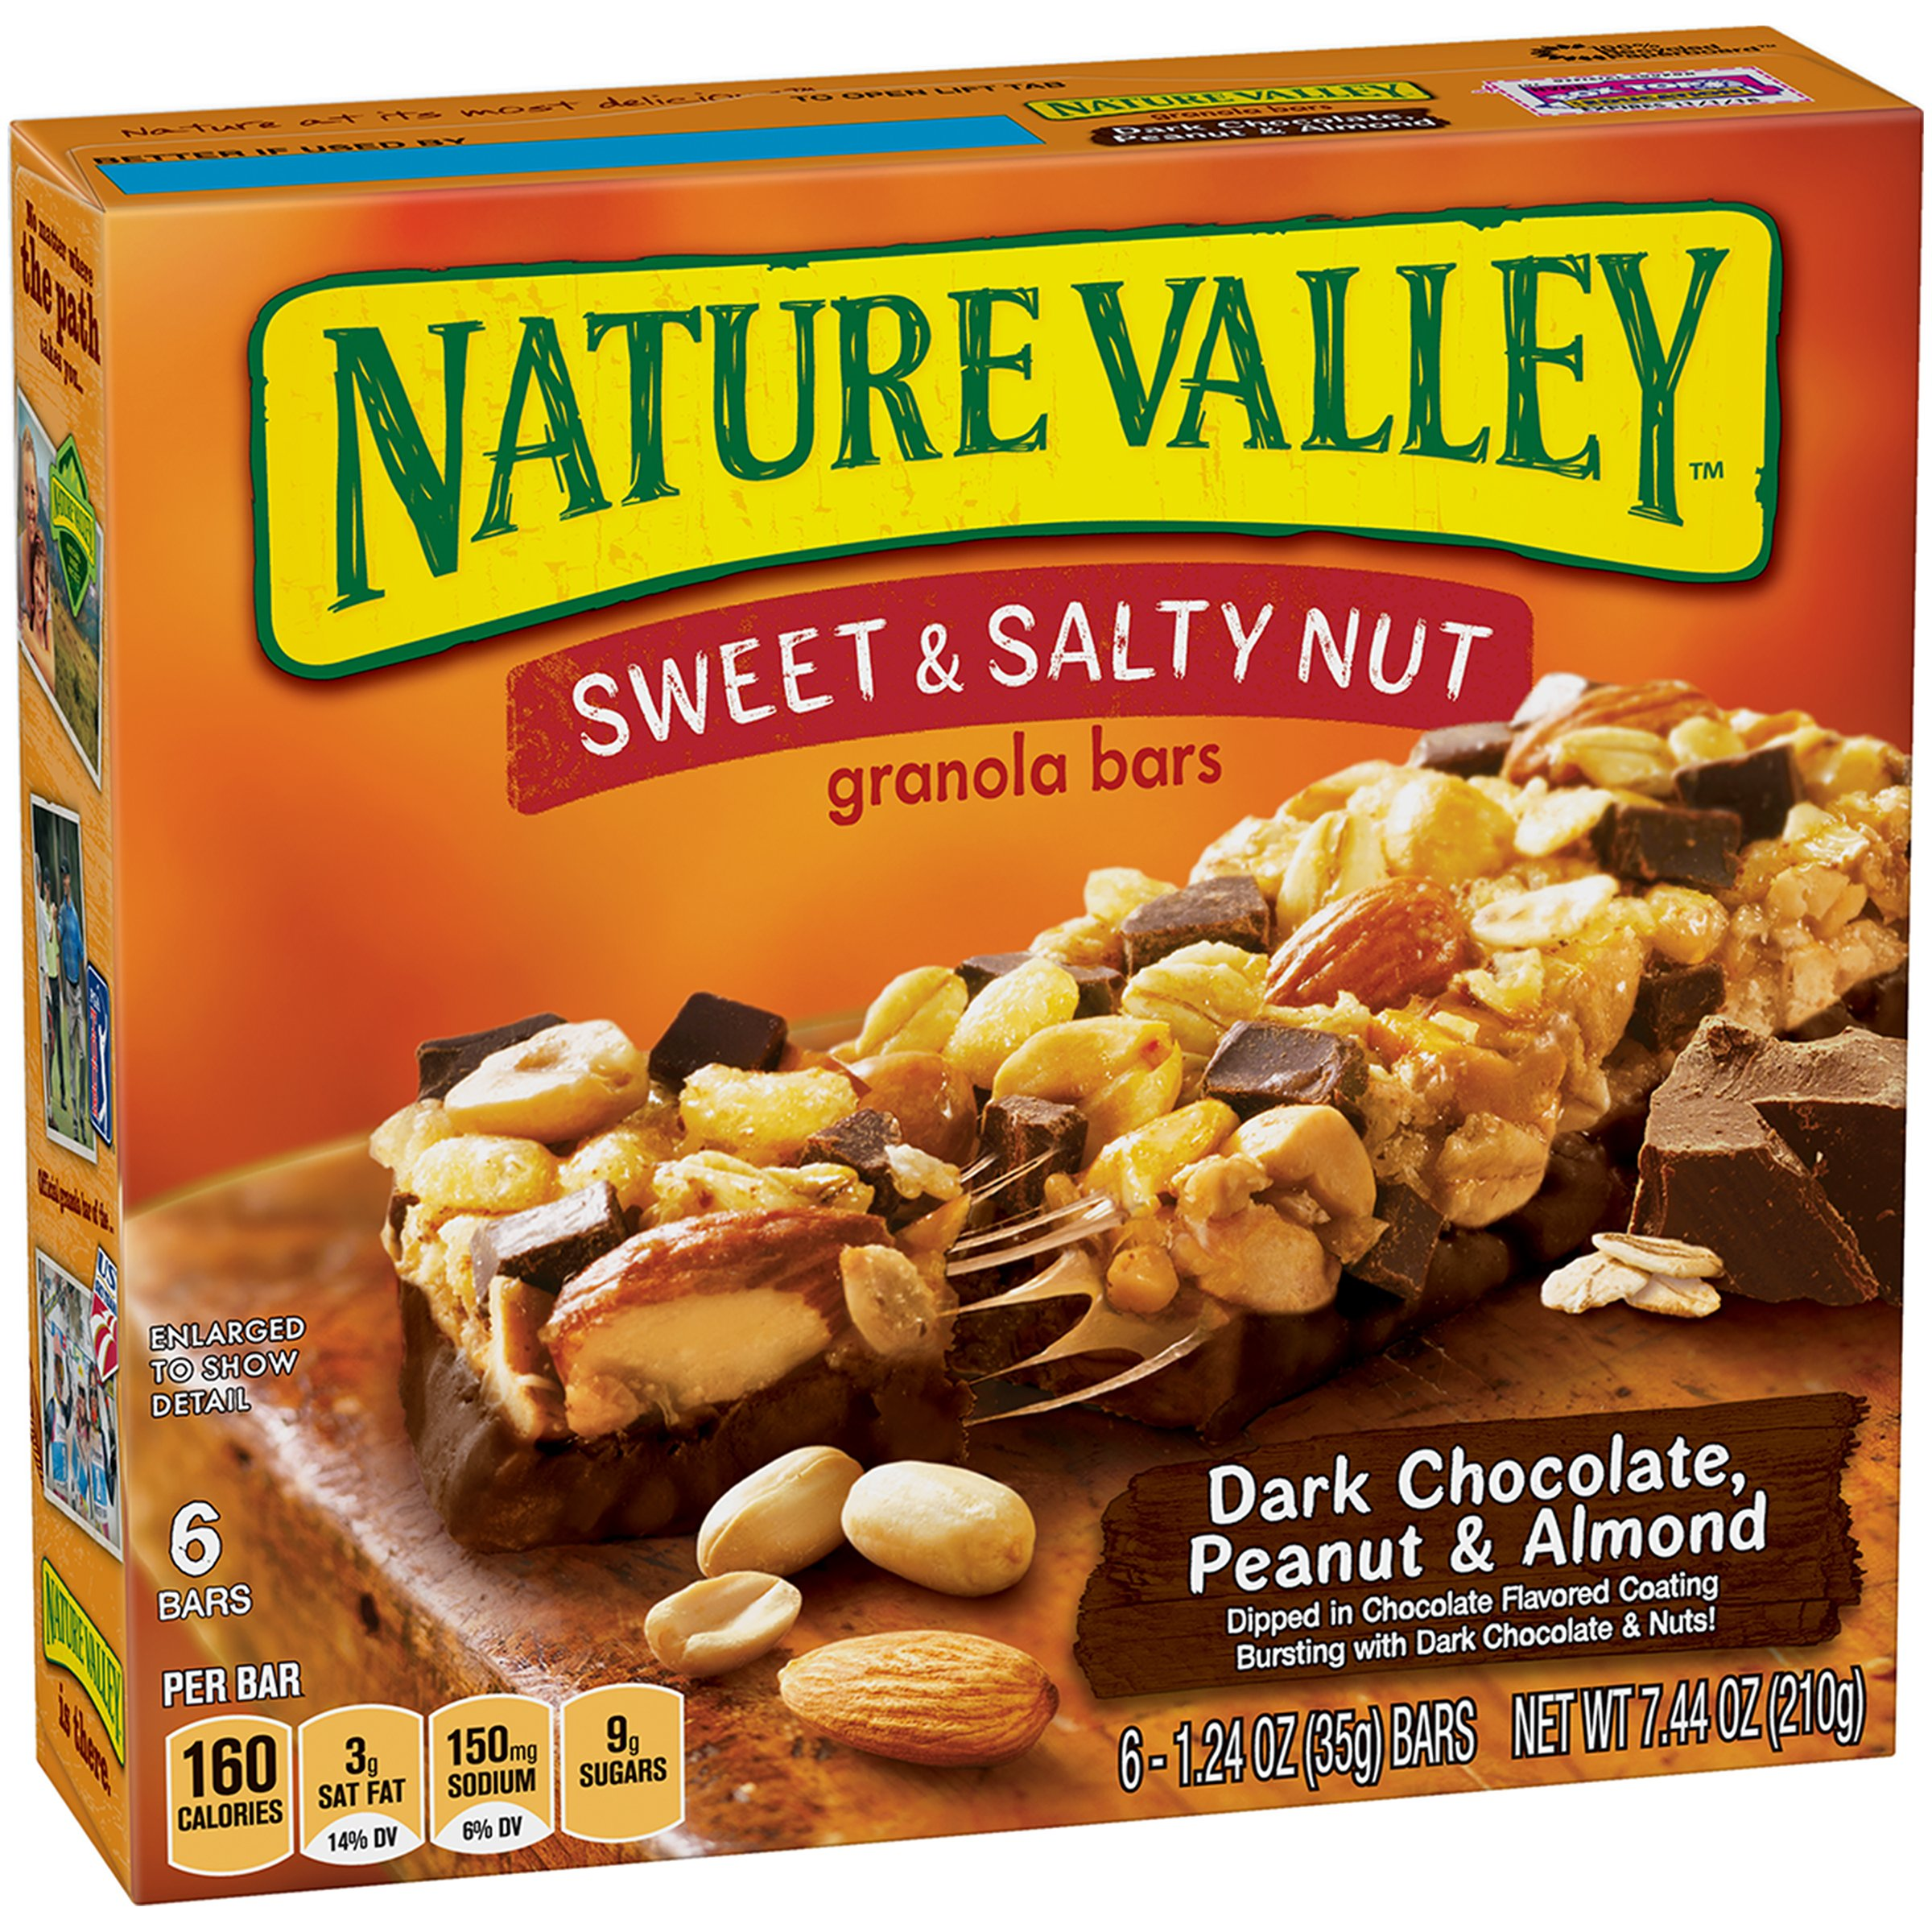 Nature Valley Granola Bars, Sweet and Salty Nut, Dark Chocolate Peanut & Almond, 6 Bars,7.44 oz (Pack of 6) by Nature Valley